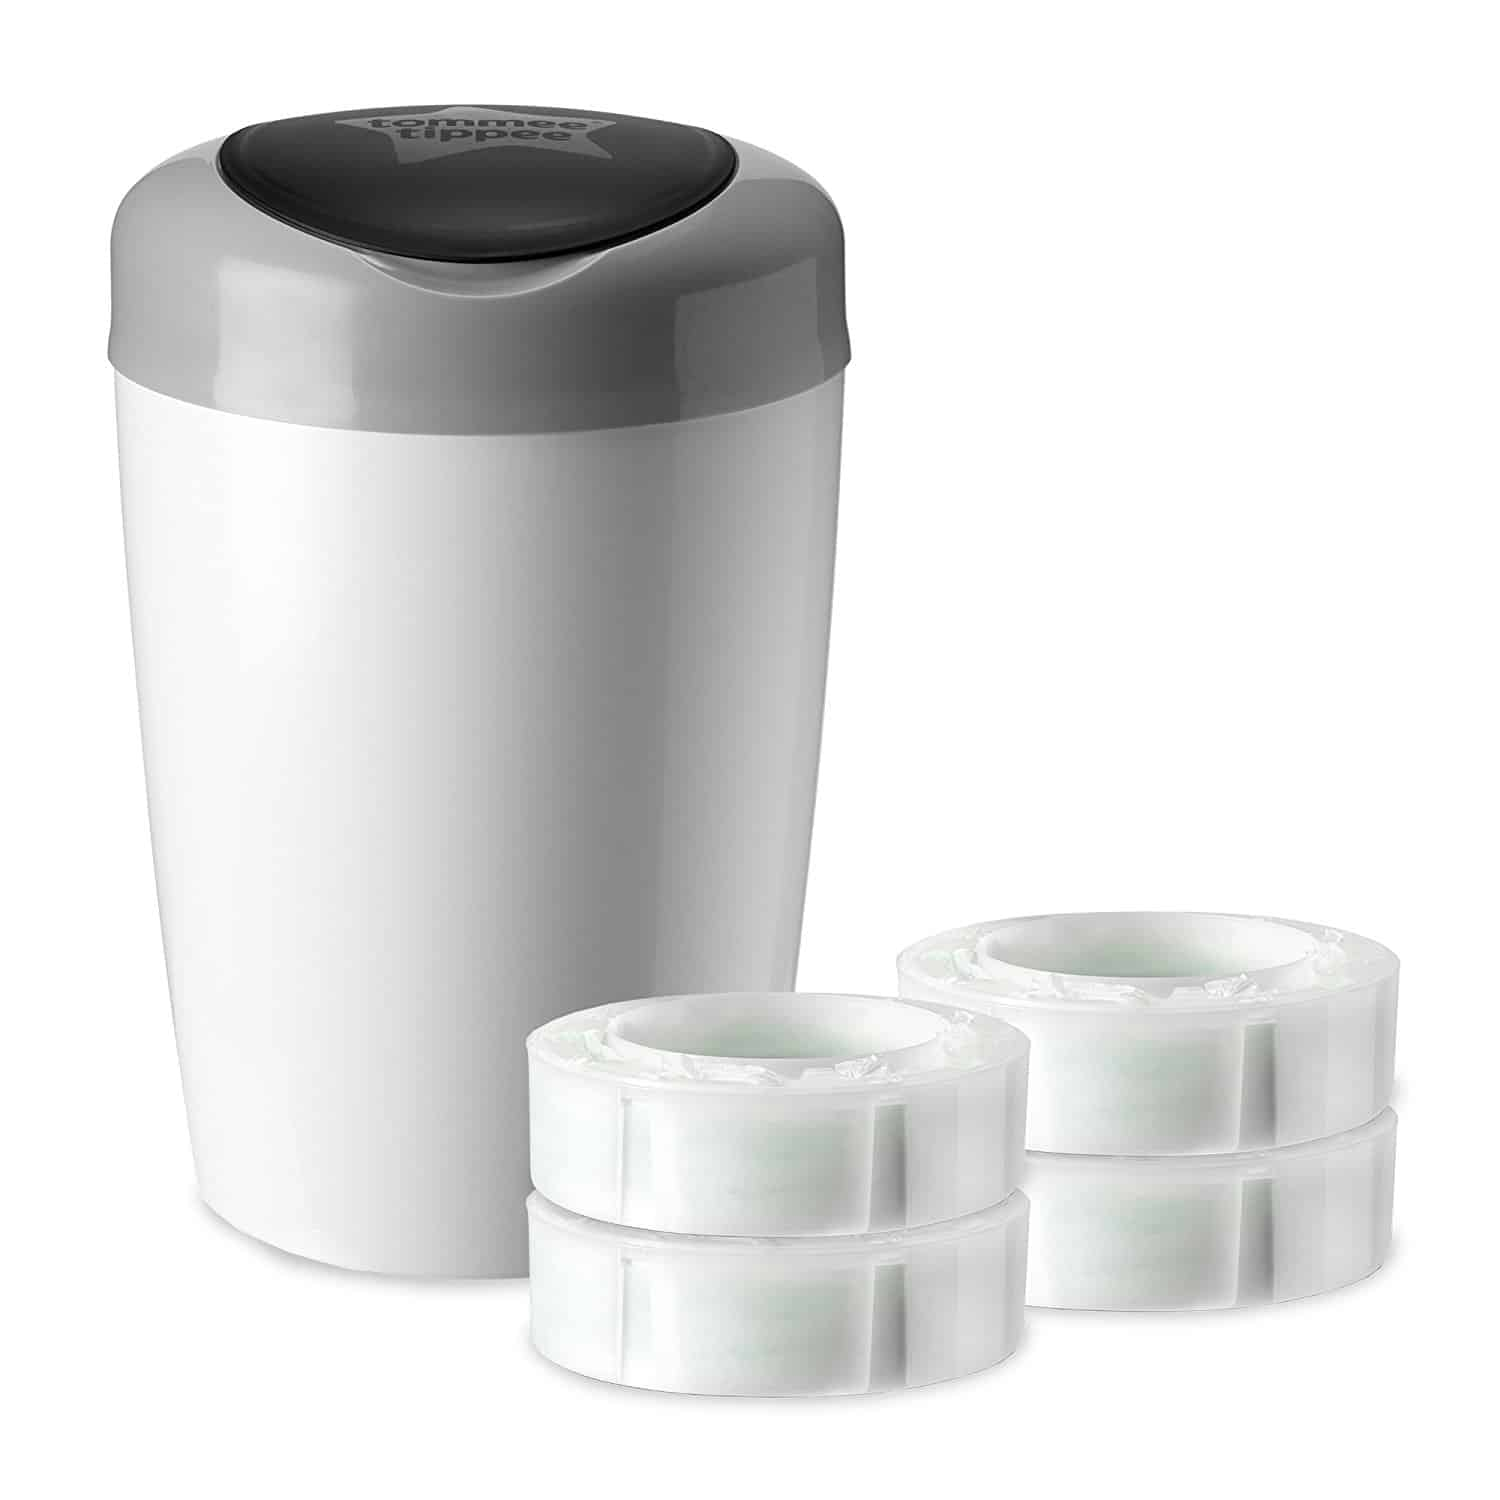 Diaper Pail review: Tommee Tippee